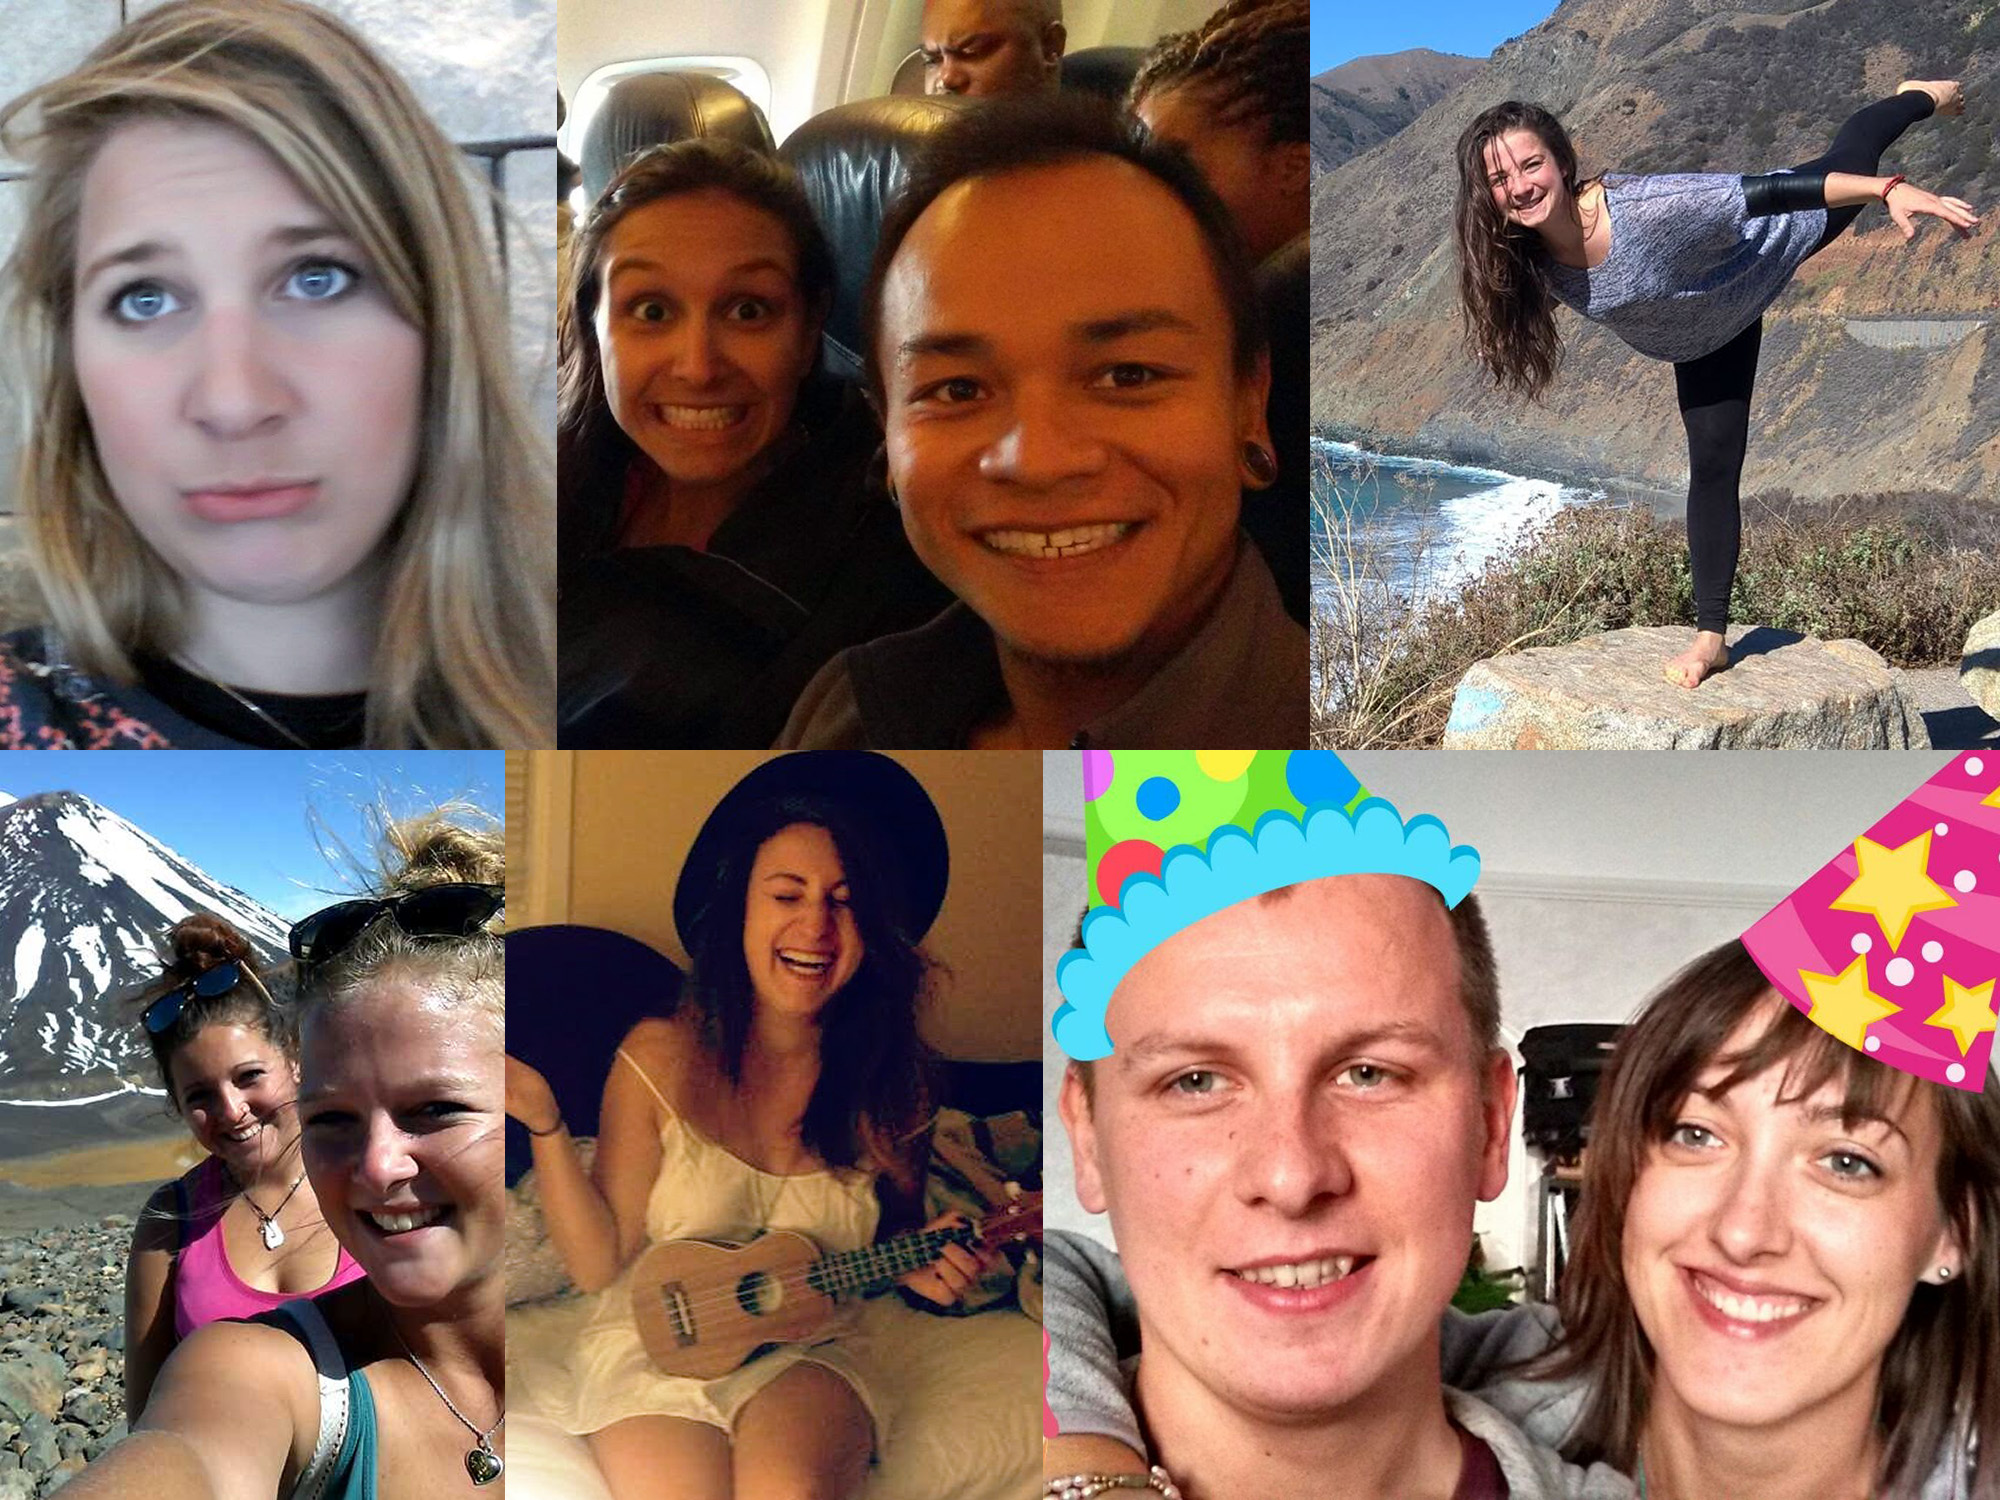 a montage of 6 WhatsApp images showing travelers in different places